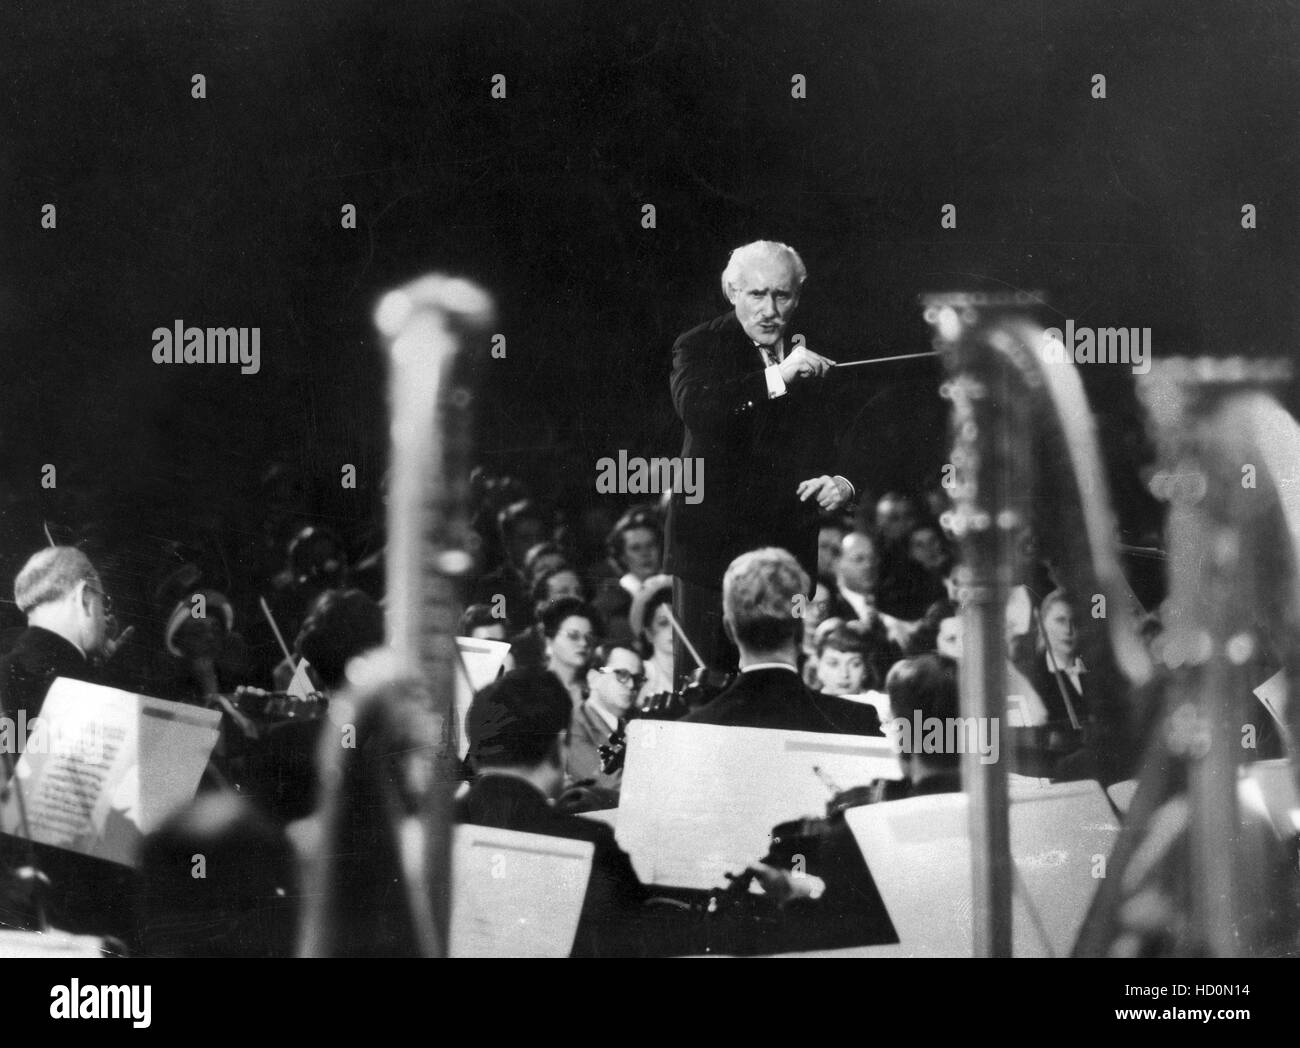 Arturo Toscanini conducting the NBC Symphony Orchestra in Studio 8H, circa 1940s Stock Photo